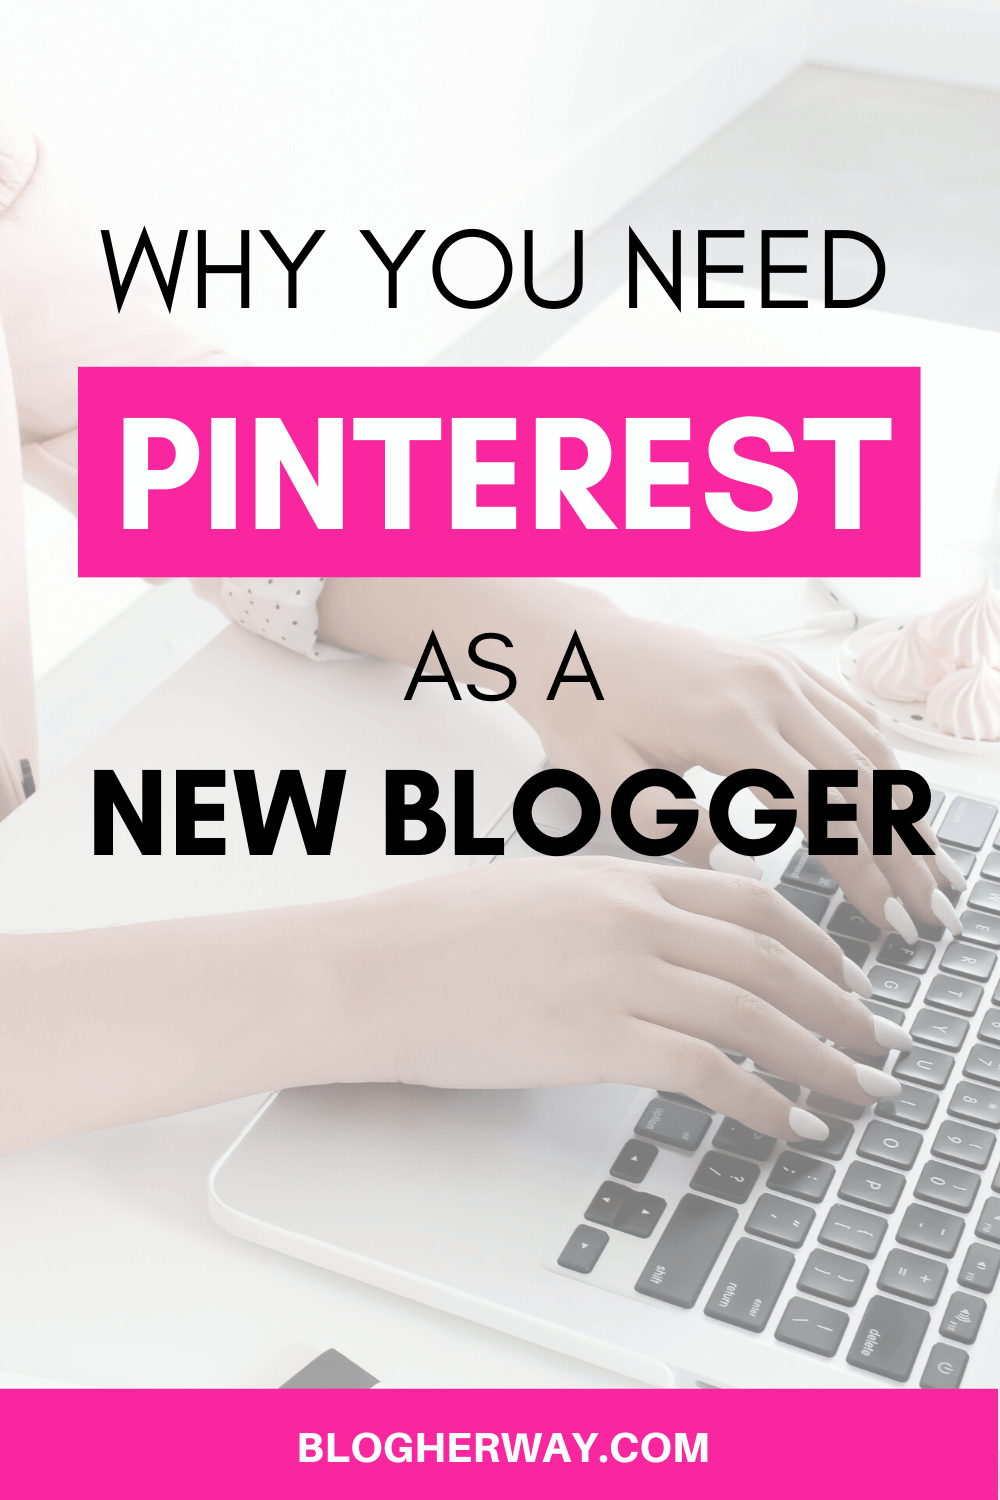 hands typing at computer with text overlay why you need pinterest as a new blogger